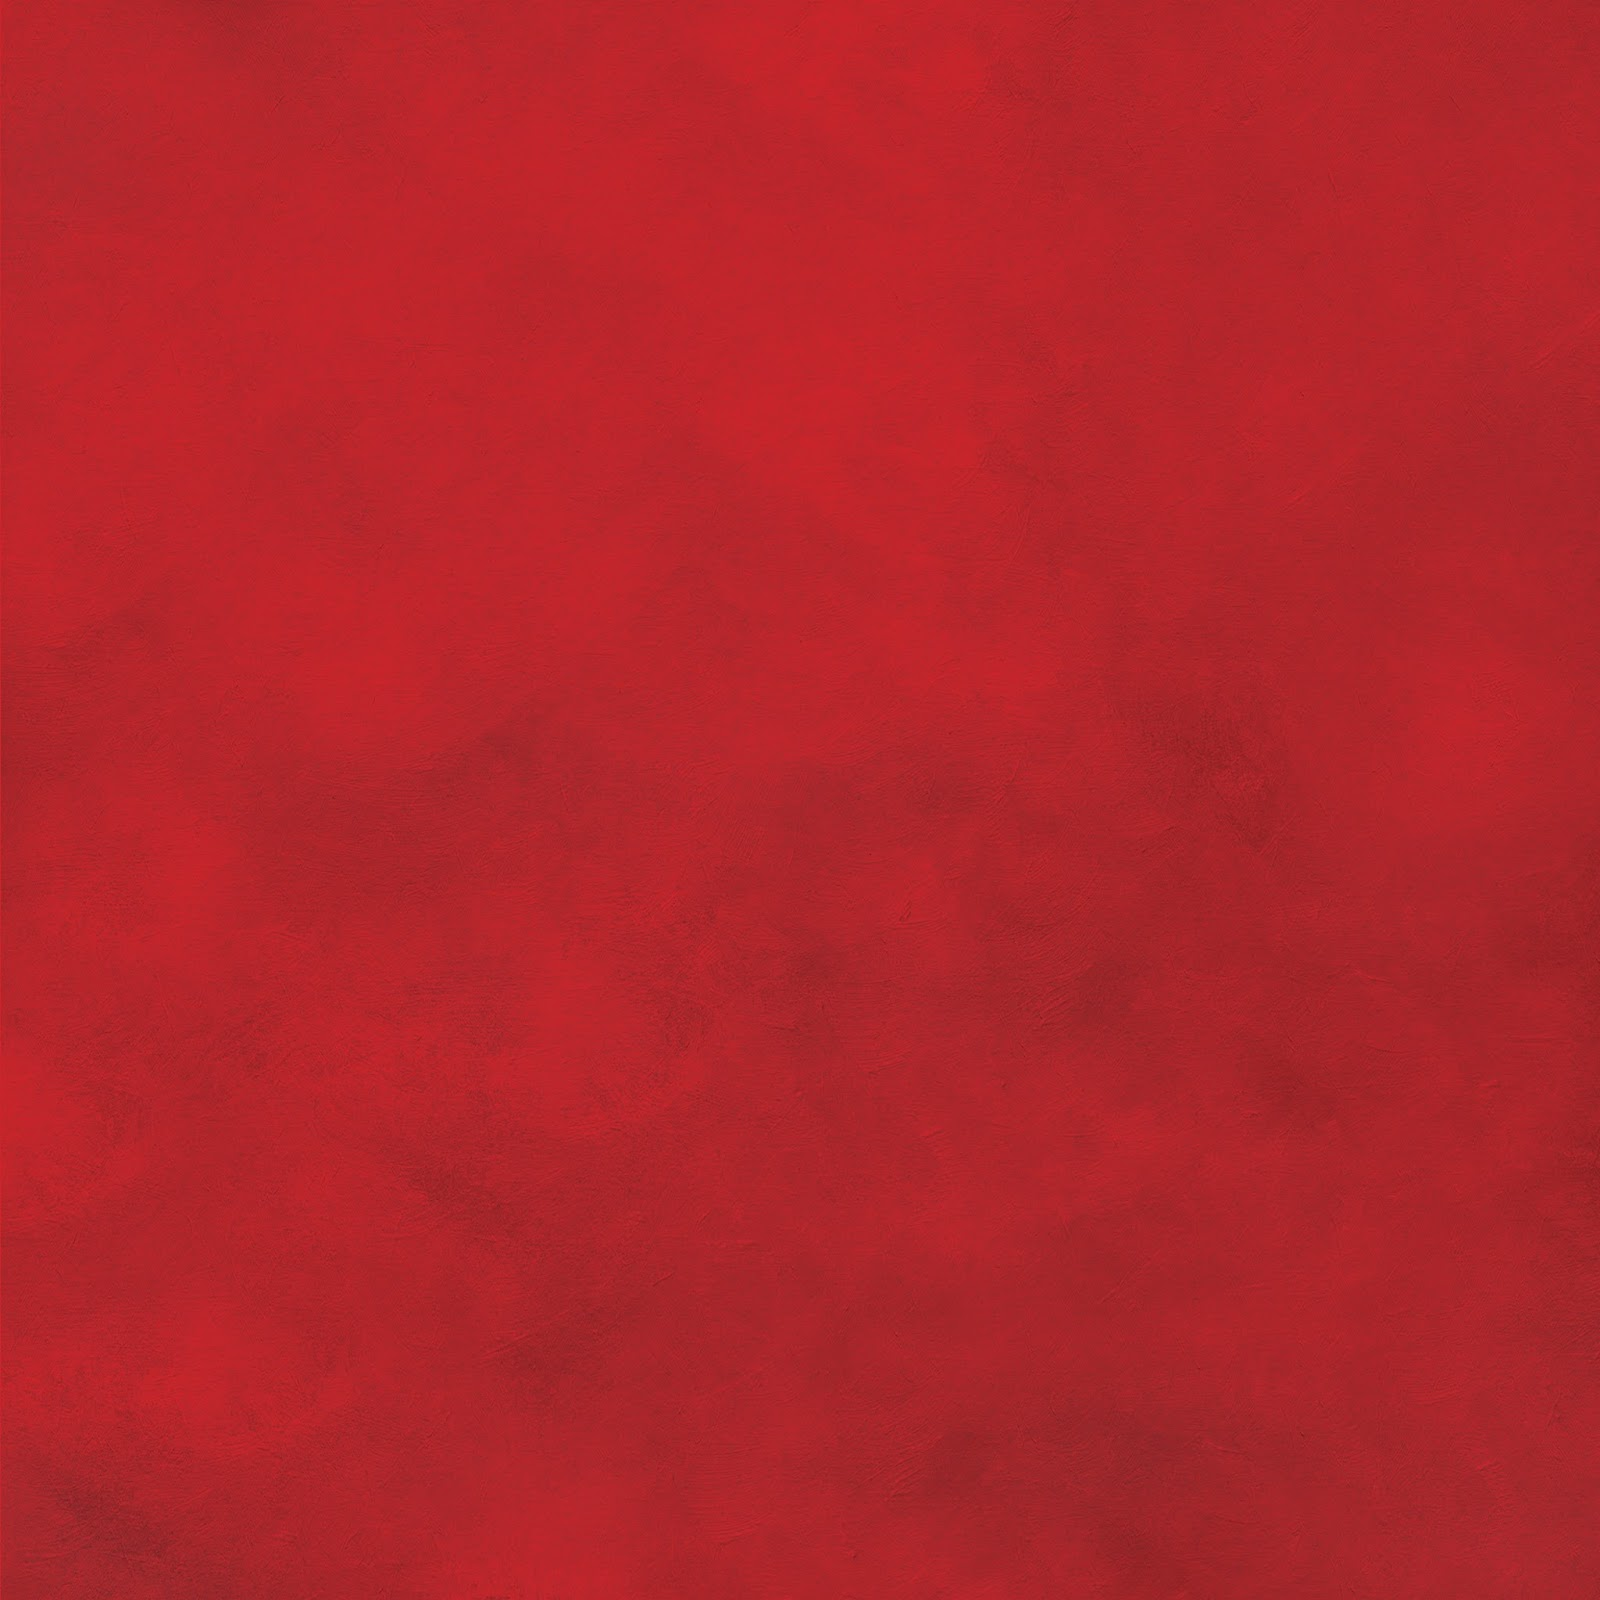 free textured digital scrapbook paper high-res red